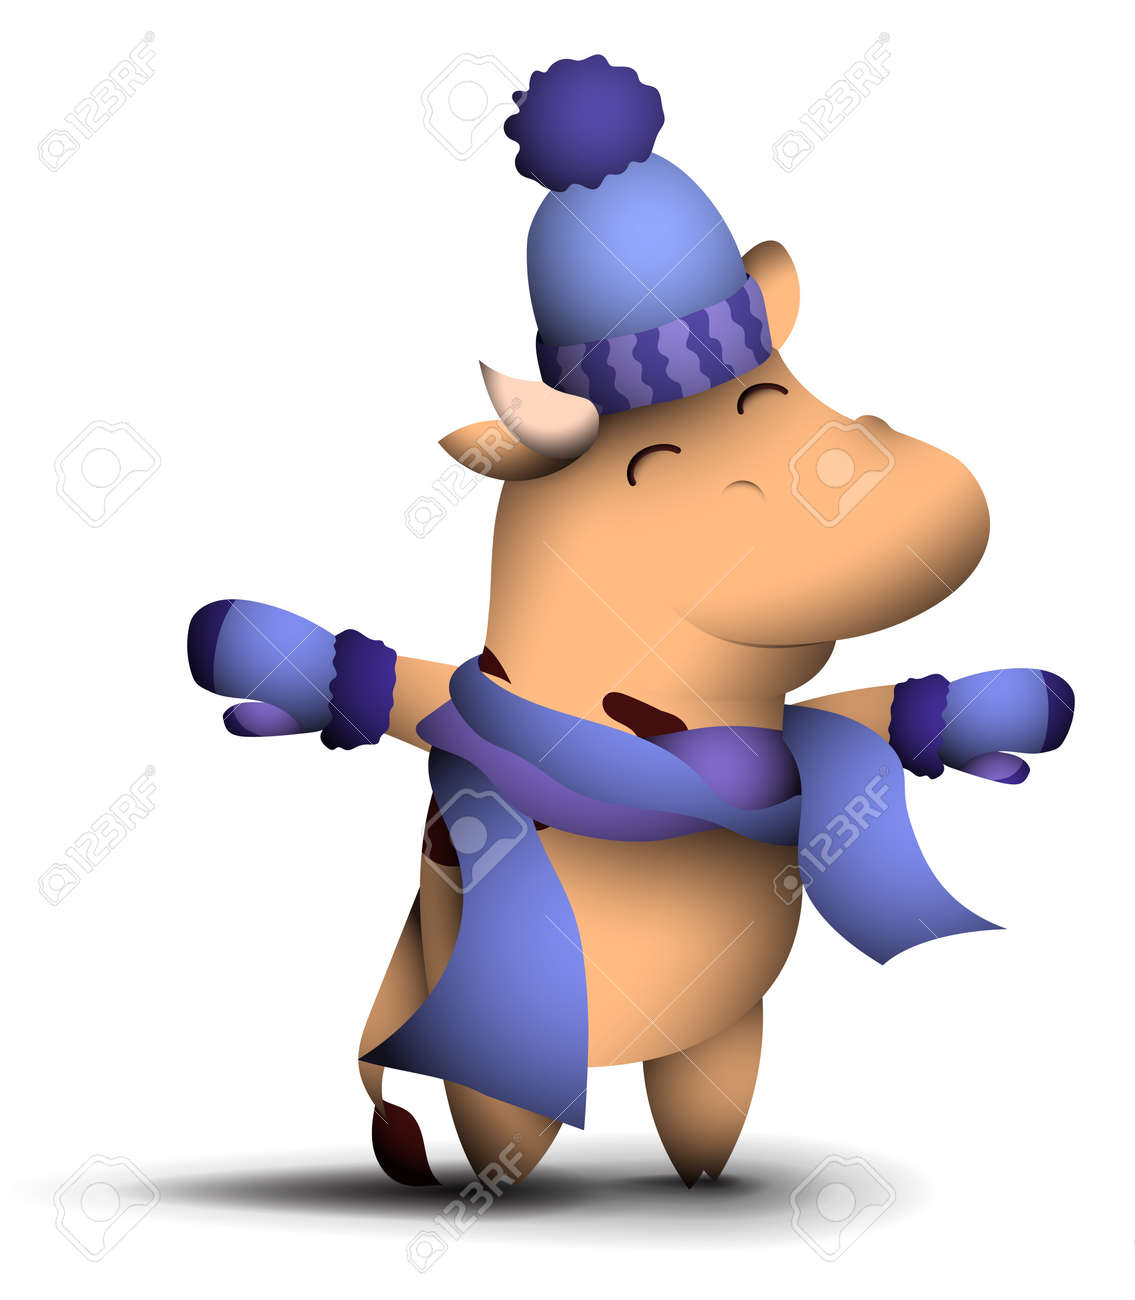 happy little bull, symbol of 2021 according to Chinese calendar, stands in hat, warm winter scarf and mittens. Winter clothing for cold weather. New Year in good mood. Funny animals. Vector - 156668912